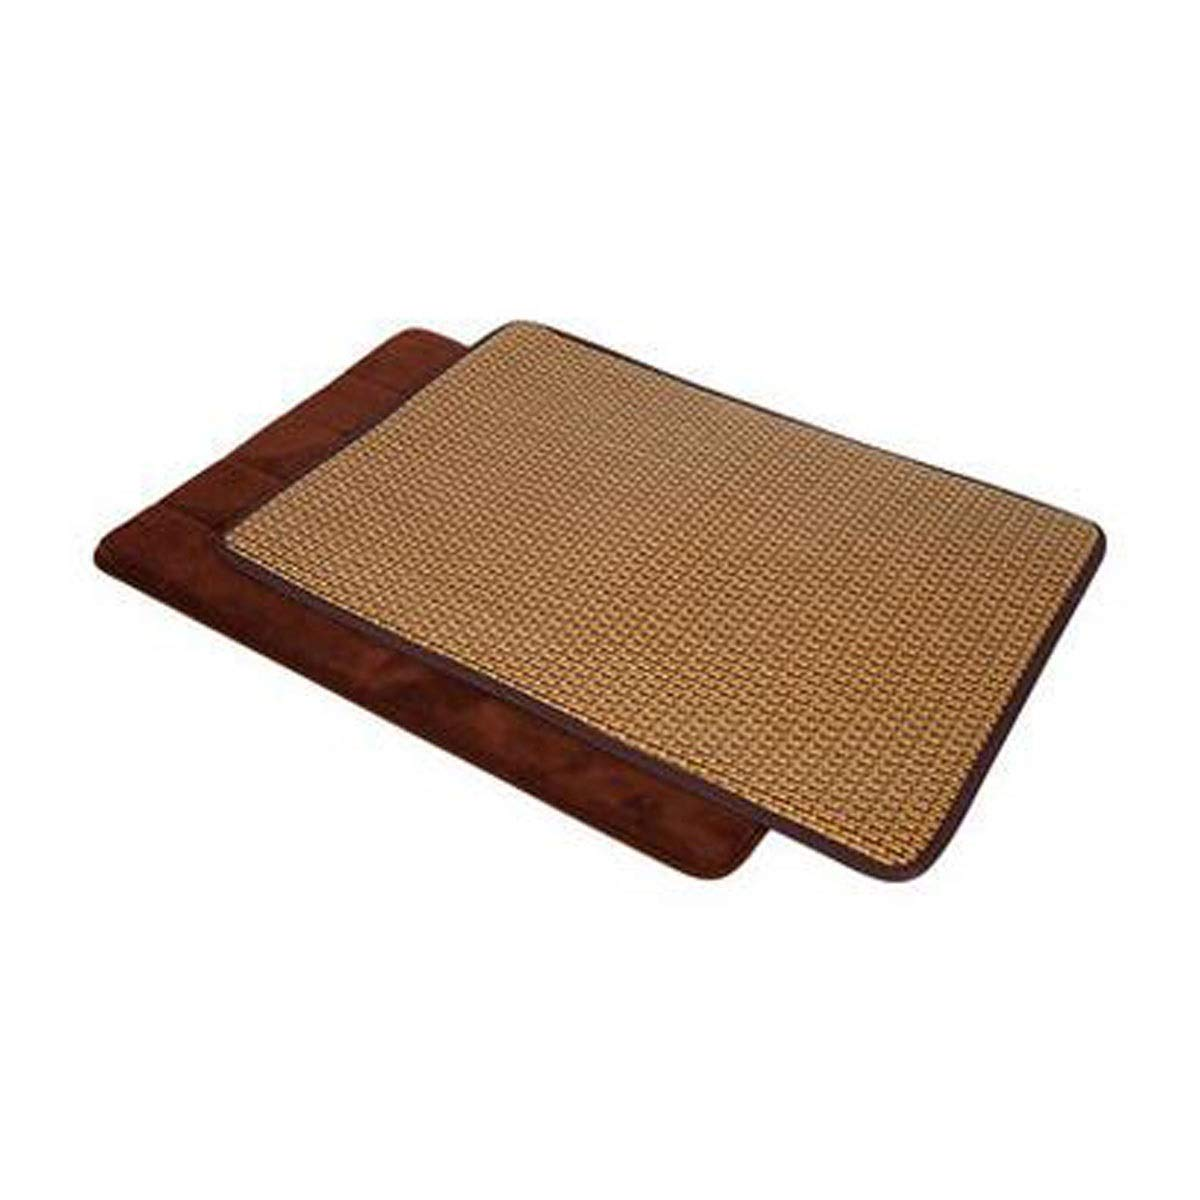 Brown M Brown M Jiansheng Dog Cooling Mattress Dog And Cat Bed Rattan Cooling Pad, Oversized Non-toxic, Non-stick, Skin Friendly, Keeps Pets Cool And Cushioned, Set (mat + Cool Pad XL) (color   Brown, Size   M)